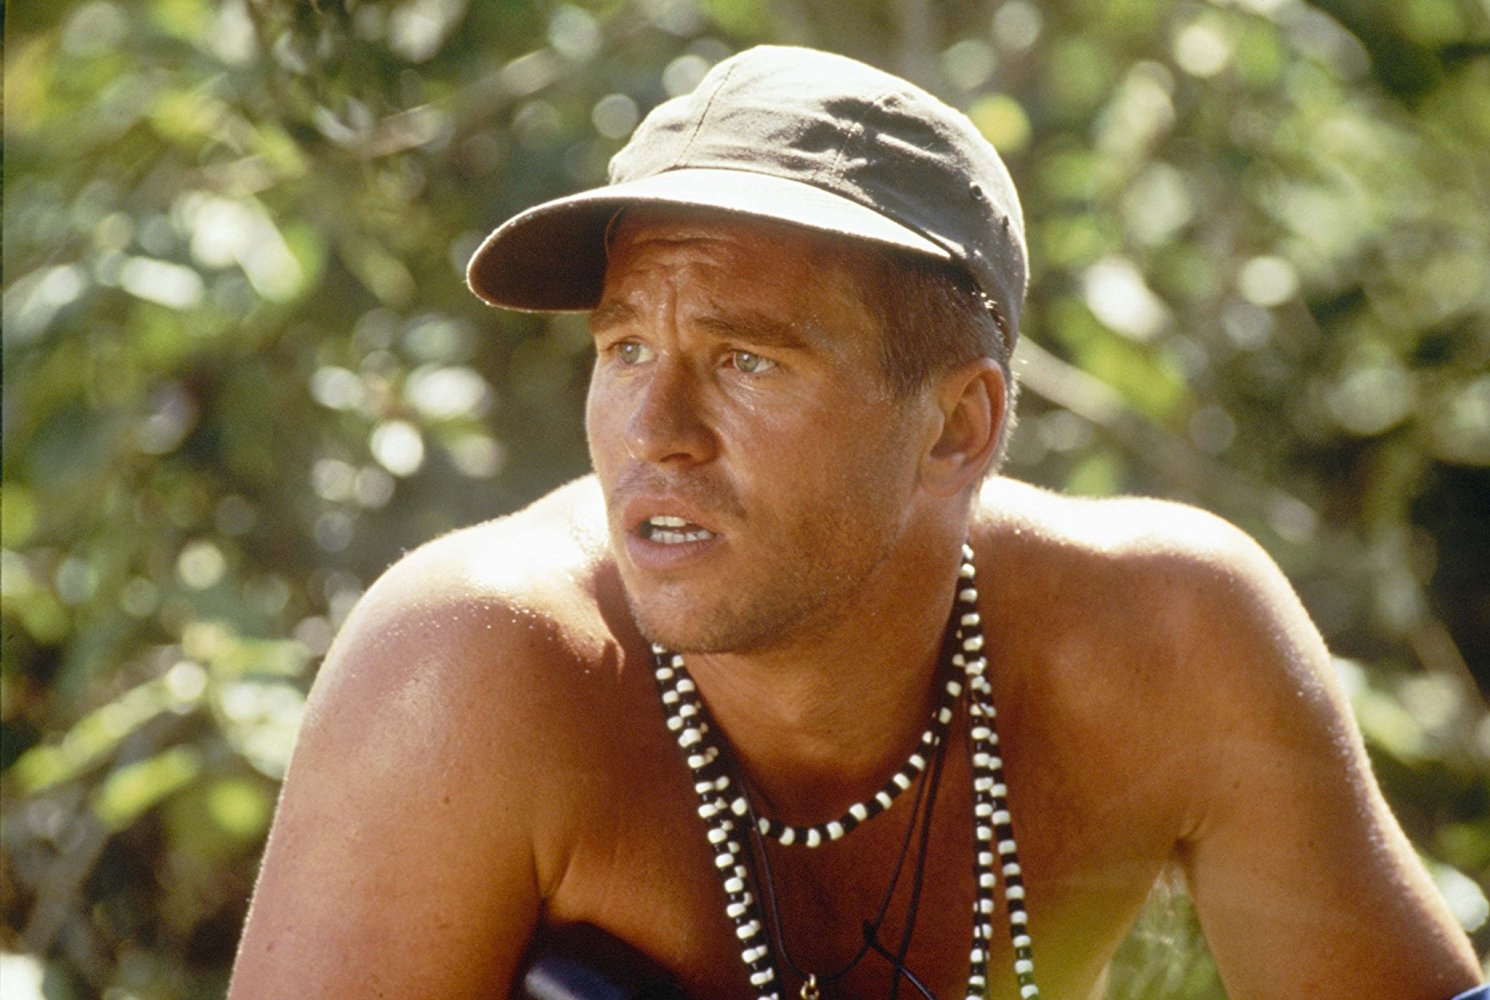 Val Kilmer on The Island of Dr. Moreau and Batman Forever